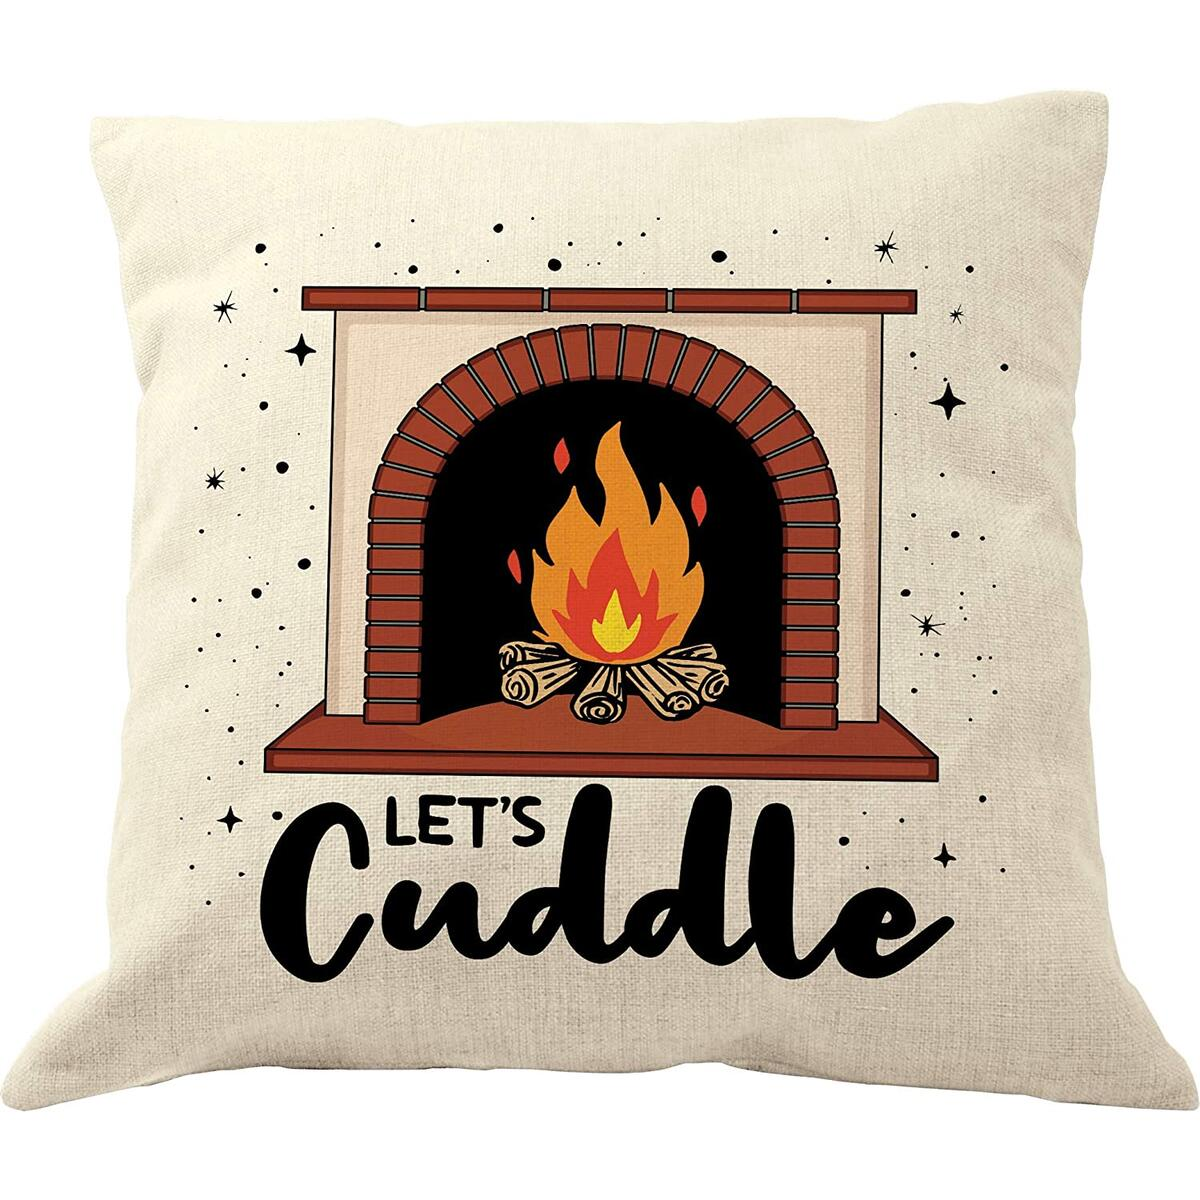 DrupsCo Let's Cuddle Pillow - 18 x 18 Let's Cuddle Pillow Cover - Let's Cuddle Throw Pillow